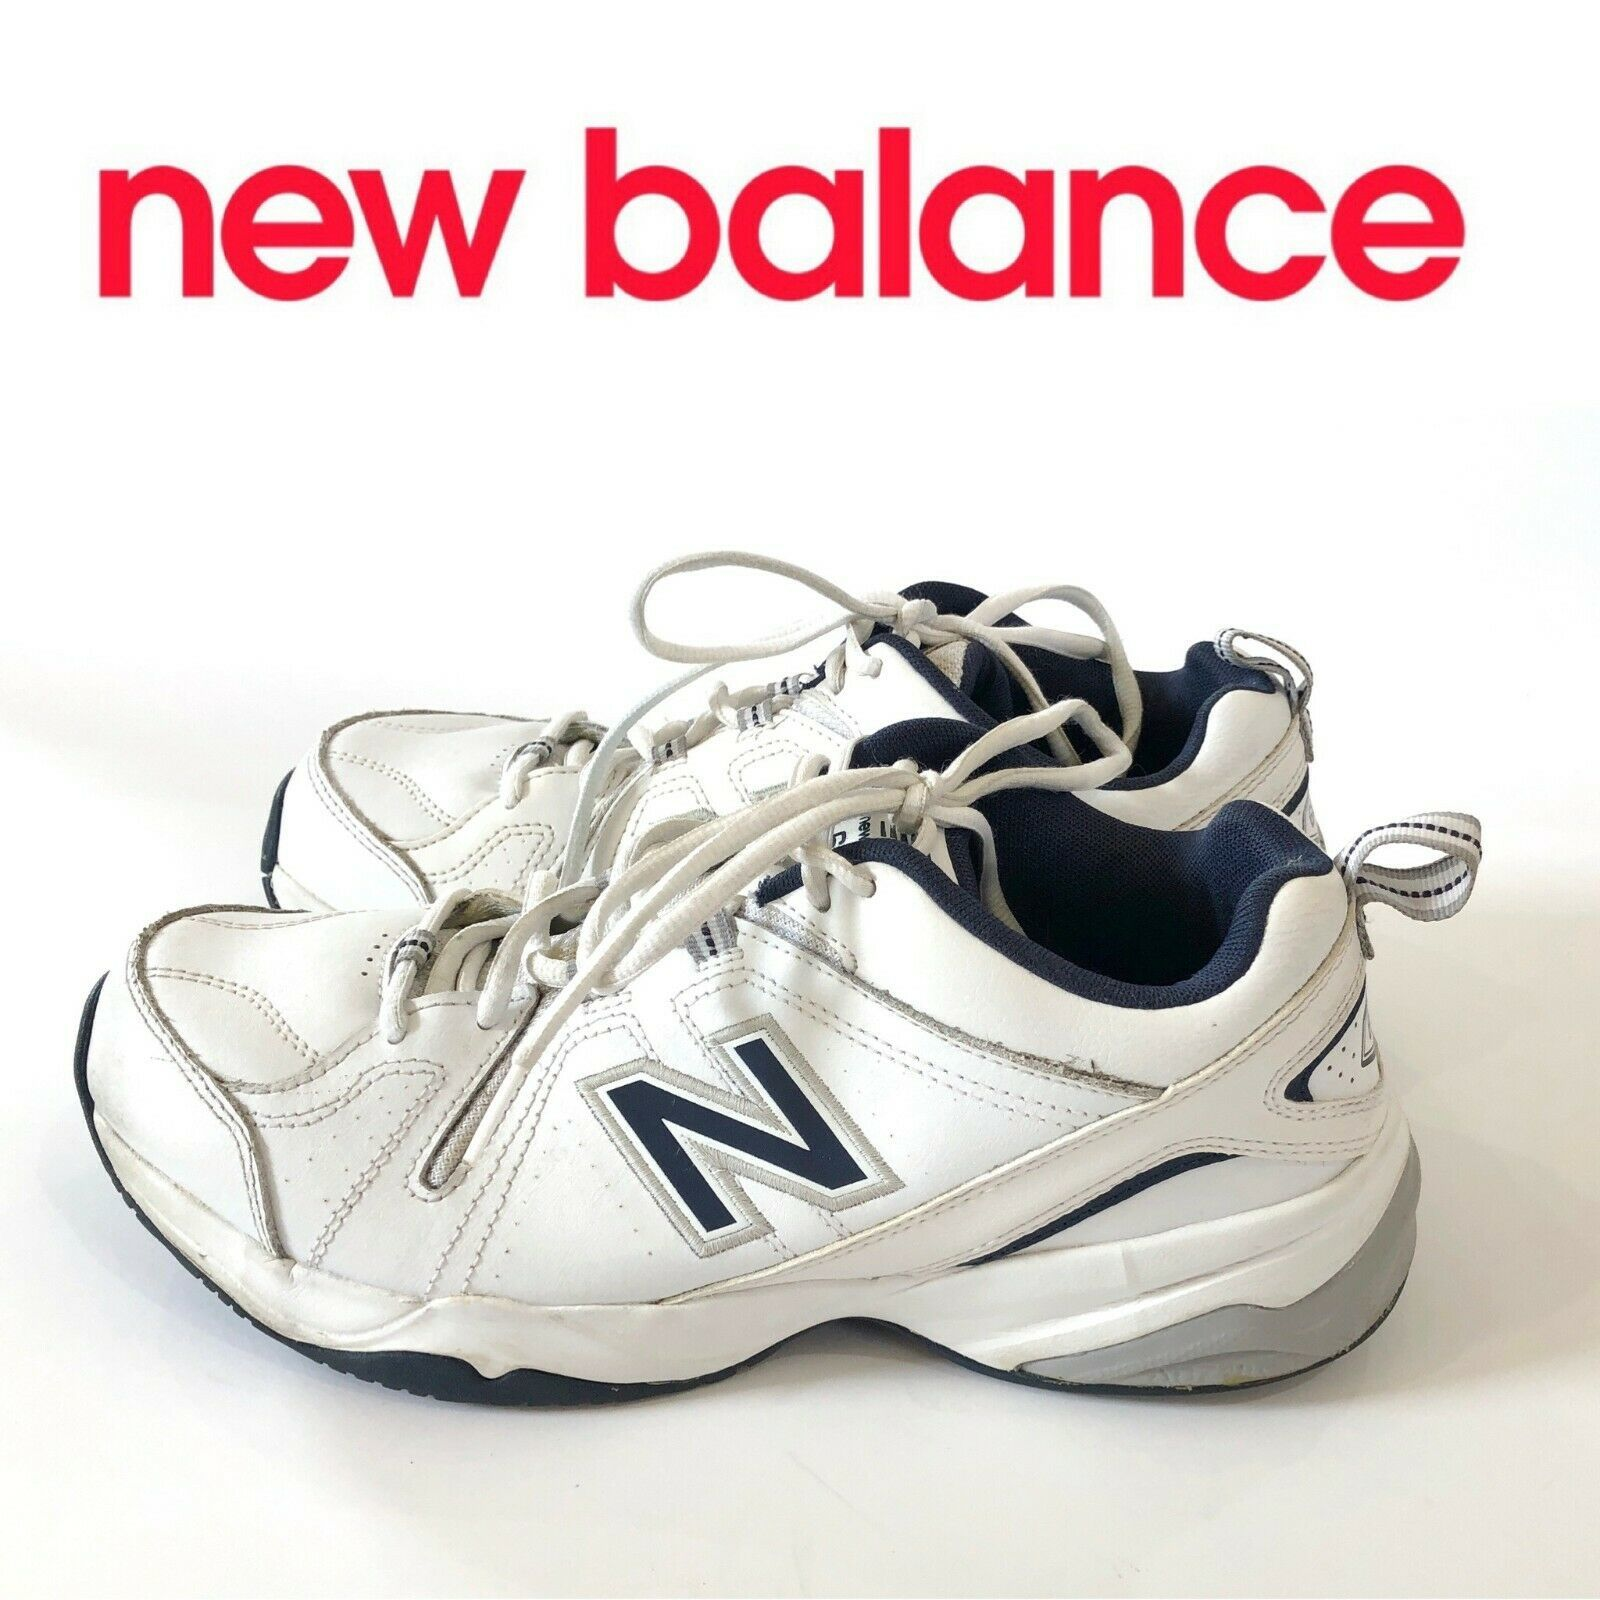 $89 New Balance 608V4 Trainers Sneakers Mens Shoes Size 9.5